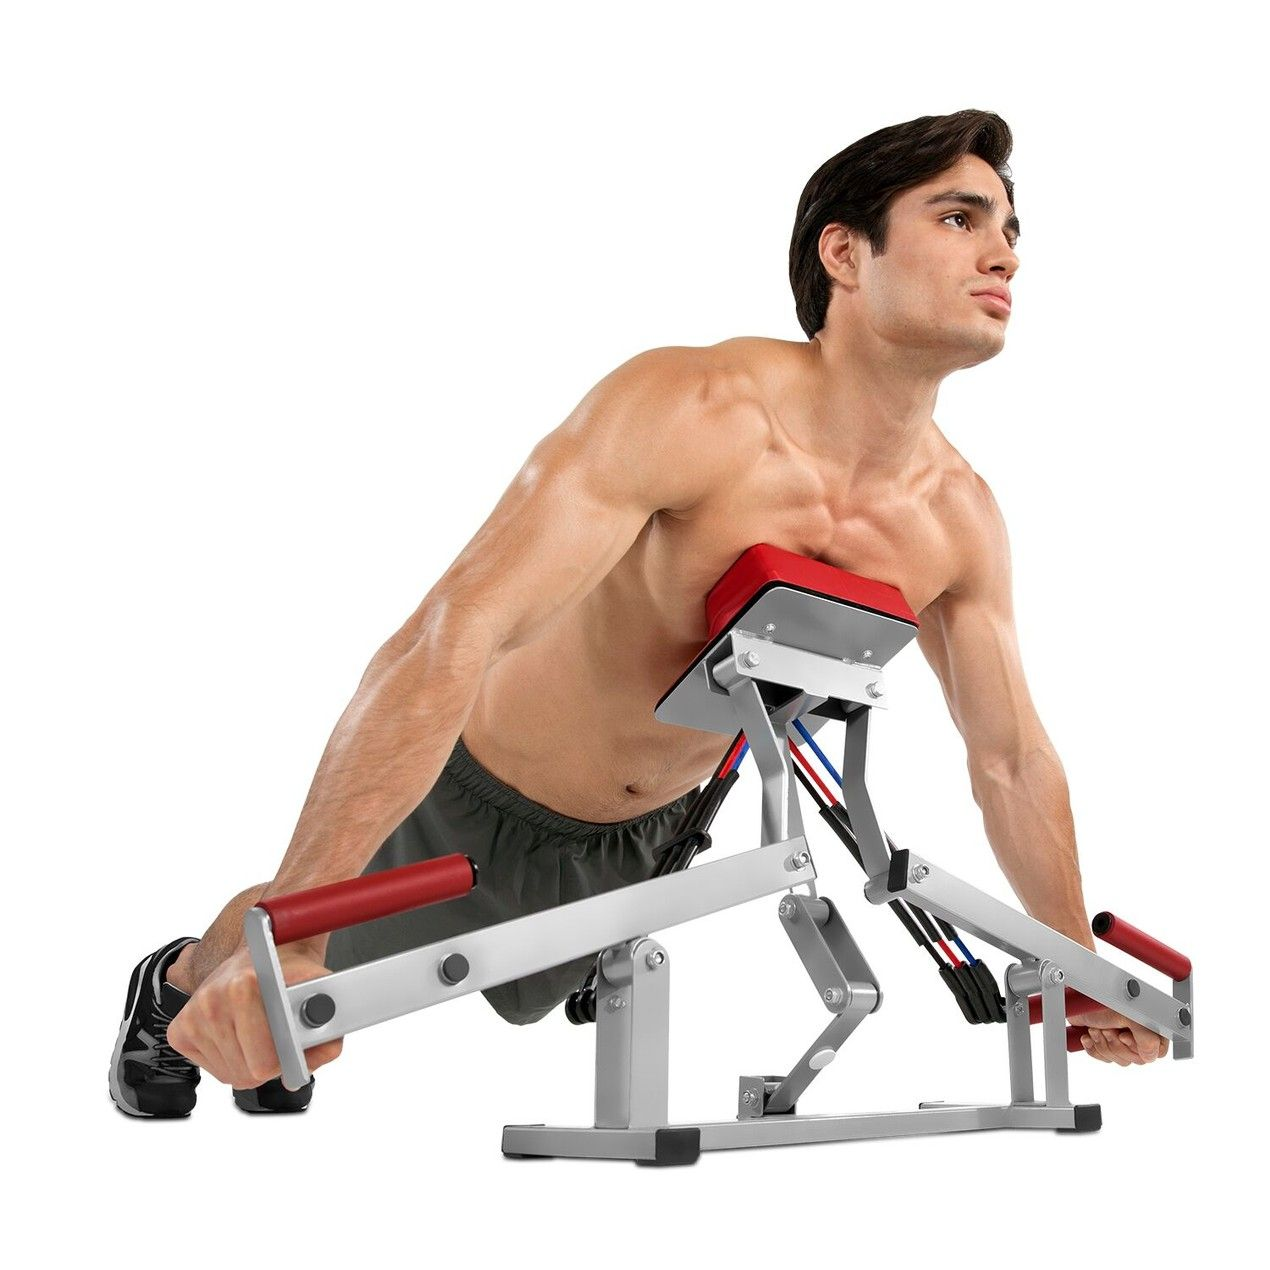 Rocket Fitness Push Up Pump Body Sculpting Machine As Seen On Tv Push Up Workout Gym Workouts Best Chest Workout